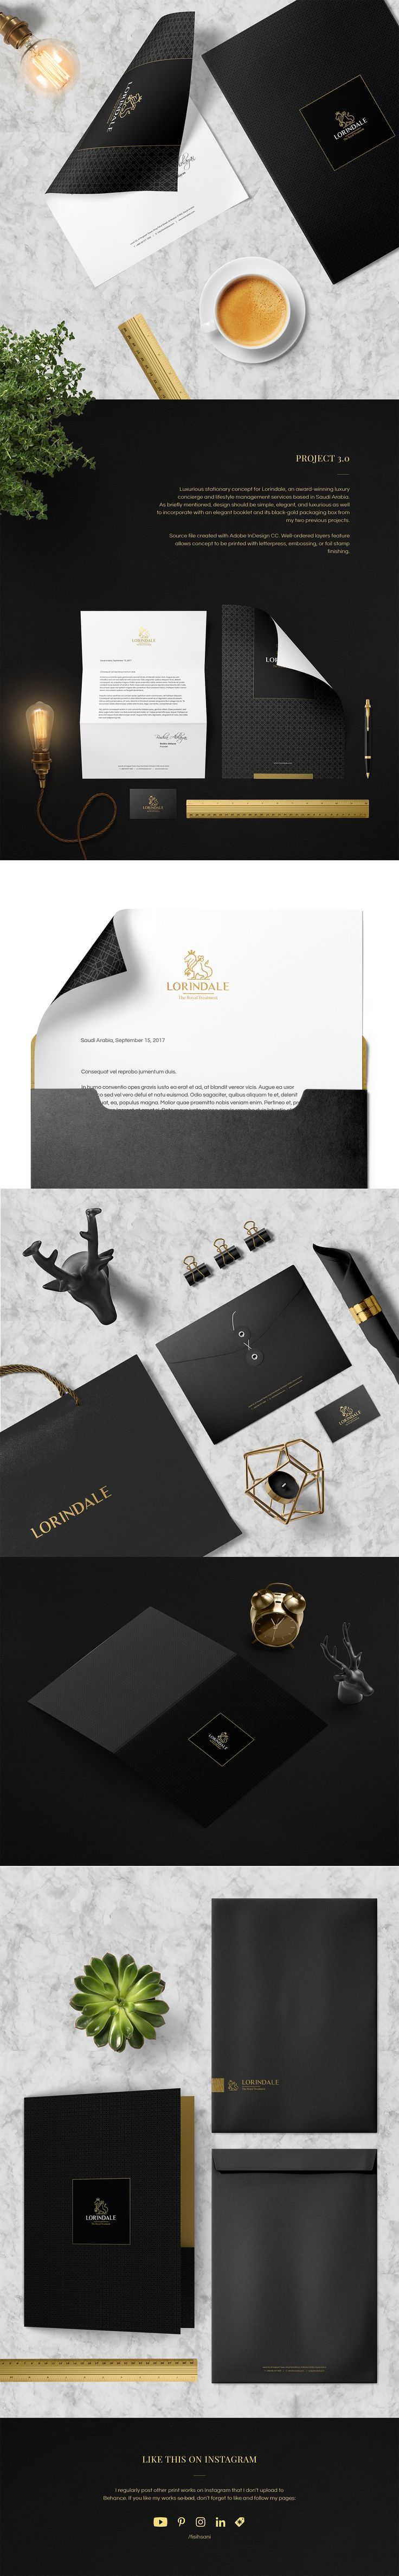 Luxurious stationary concept for Lorindale, an award-winning luxury concierge and lifestyle management services based in Saudi Arabia. #agency #branding #concierge #consultant #elegant #gold #identity #layout #luxury #stationary